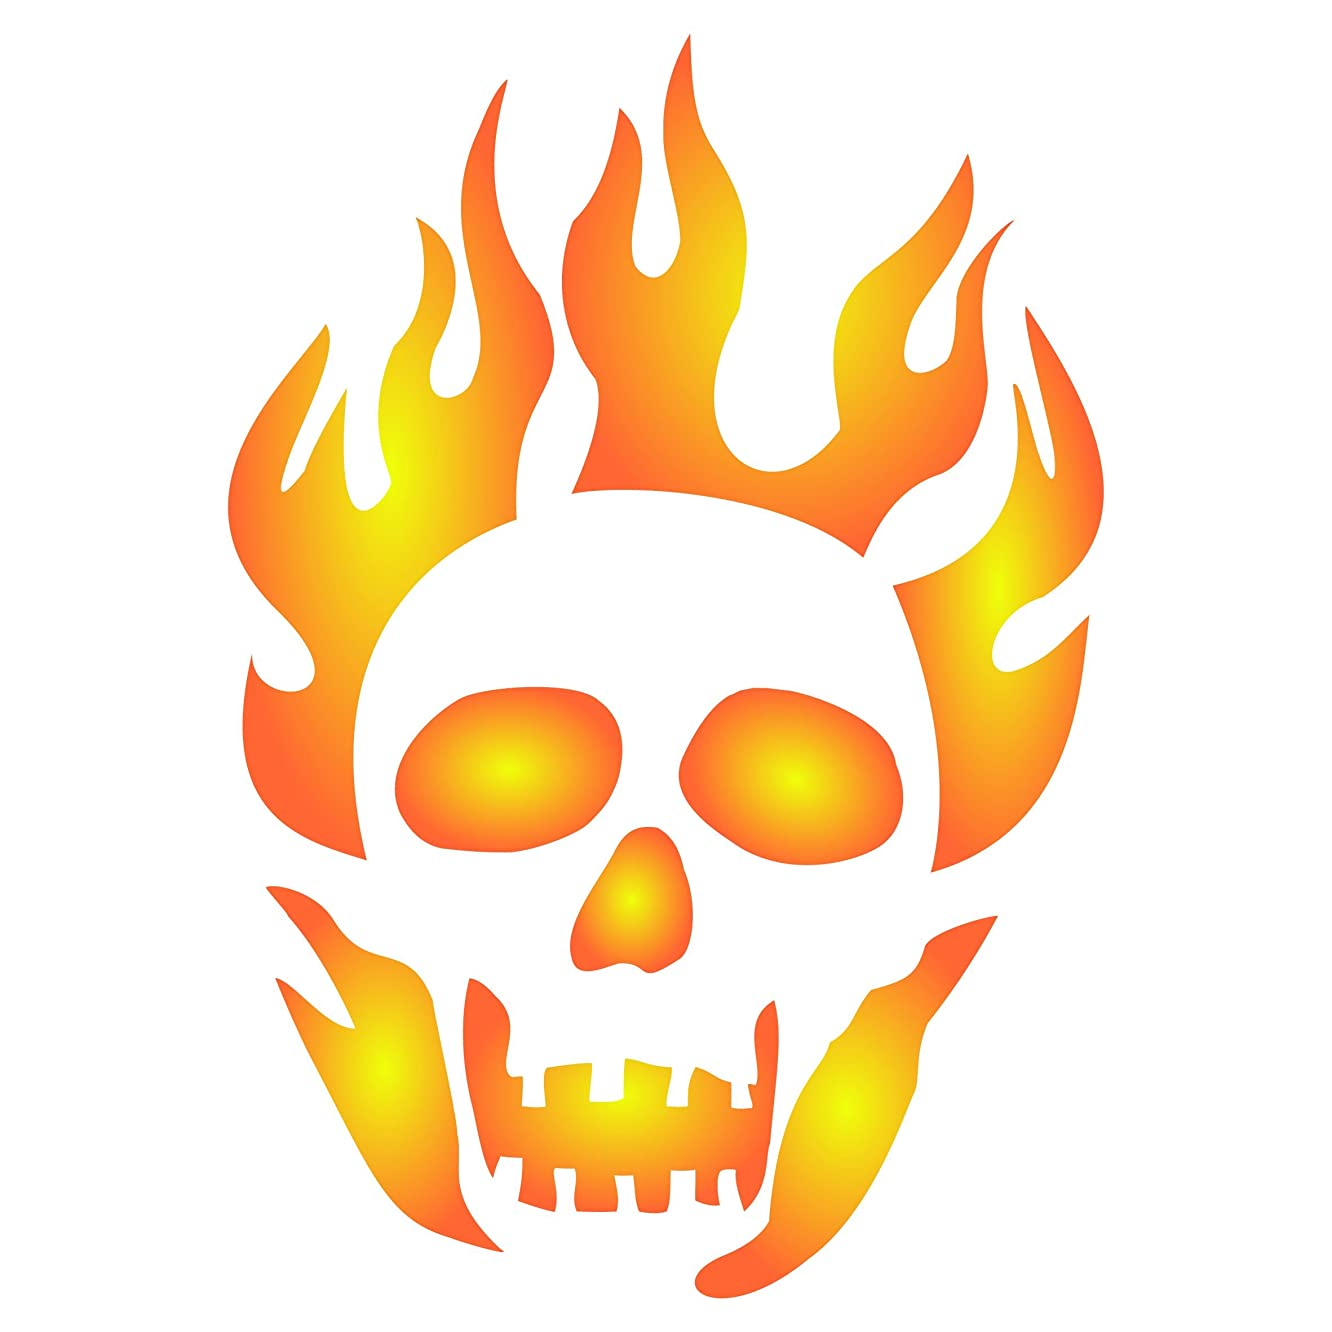 """Halloween Flaming Skull Stencil - (Size 8""""w x 11.5""""h) Reusable Halloween Wall Stencils for Painting - Best Quality Decor Ideas - Use on Walls, Floors, Fabrics, Glass, Wood, and More…"""